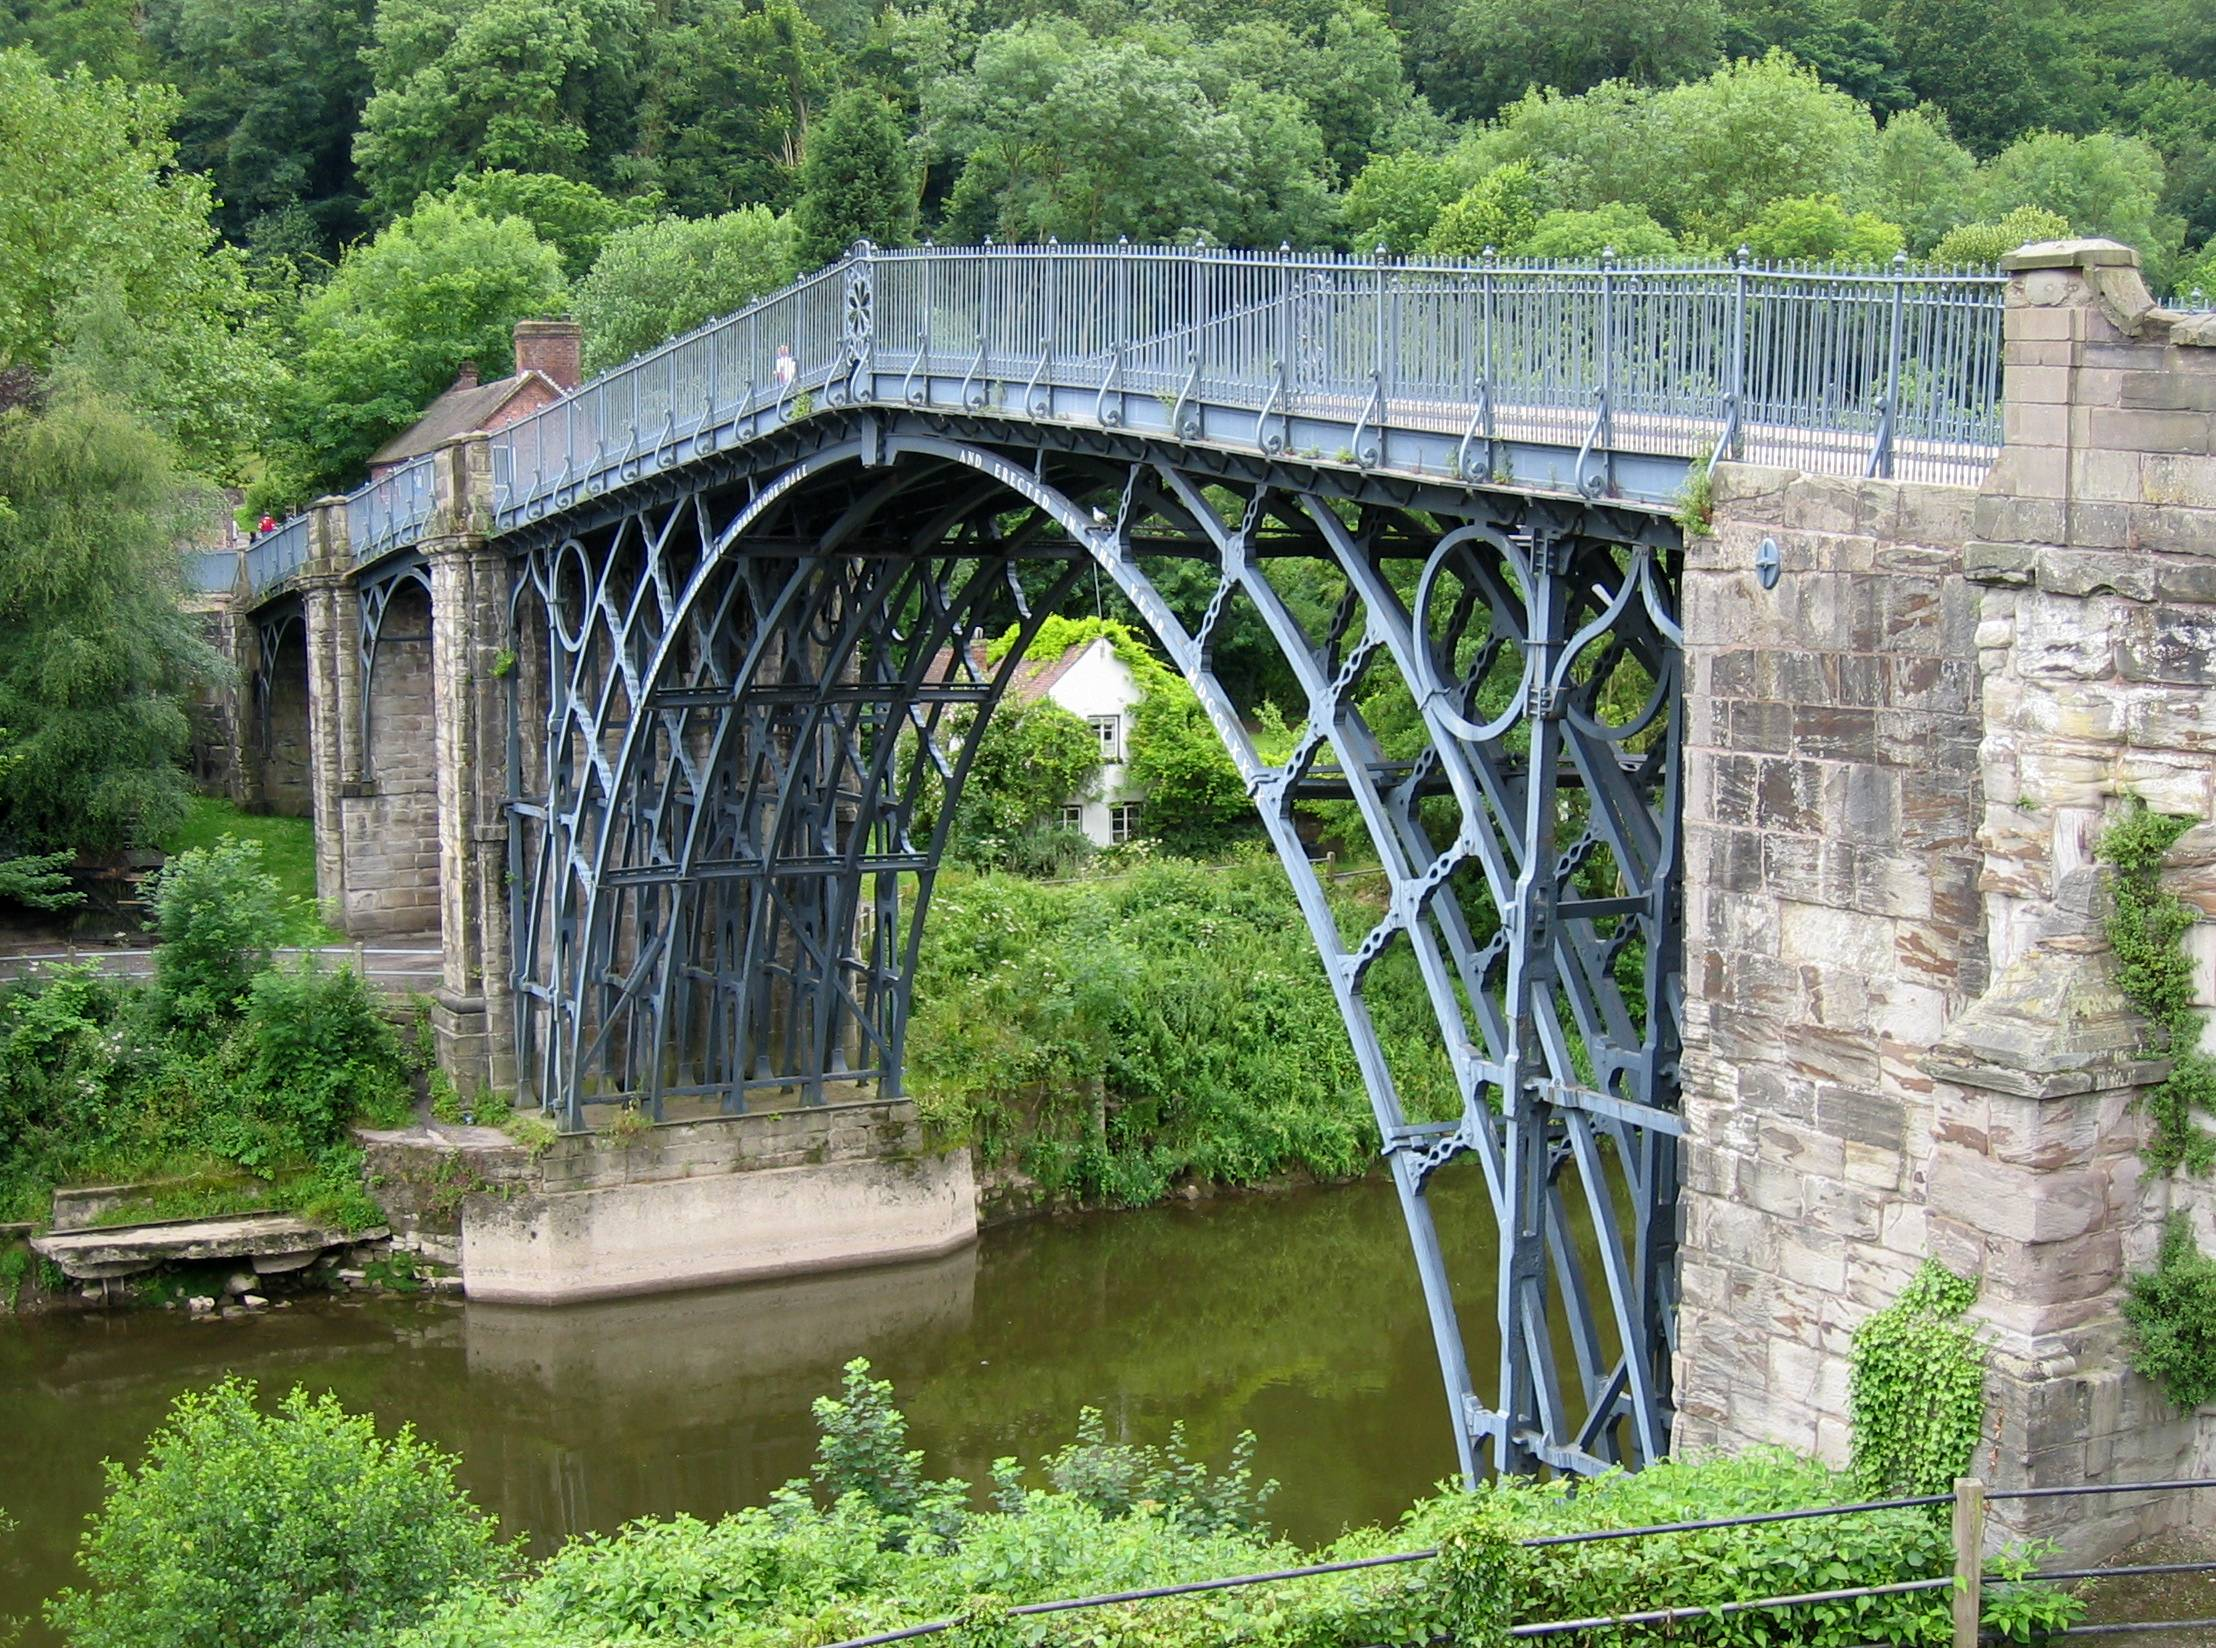 File:Ironbridge 6.jpg - Wikimedia Commons